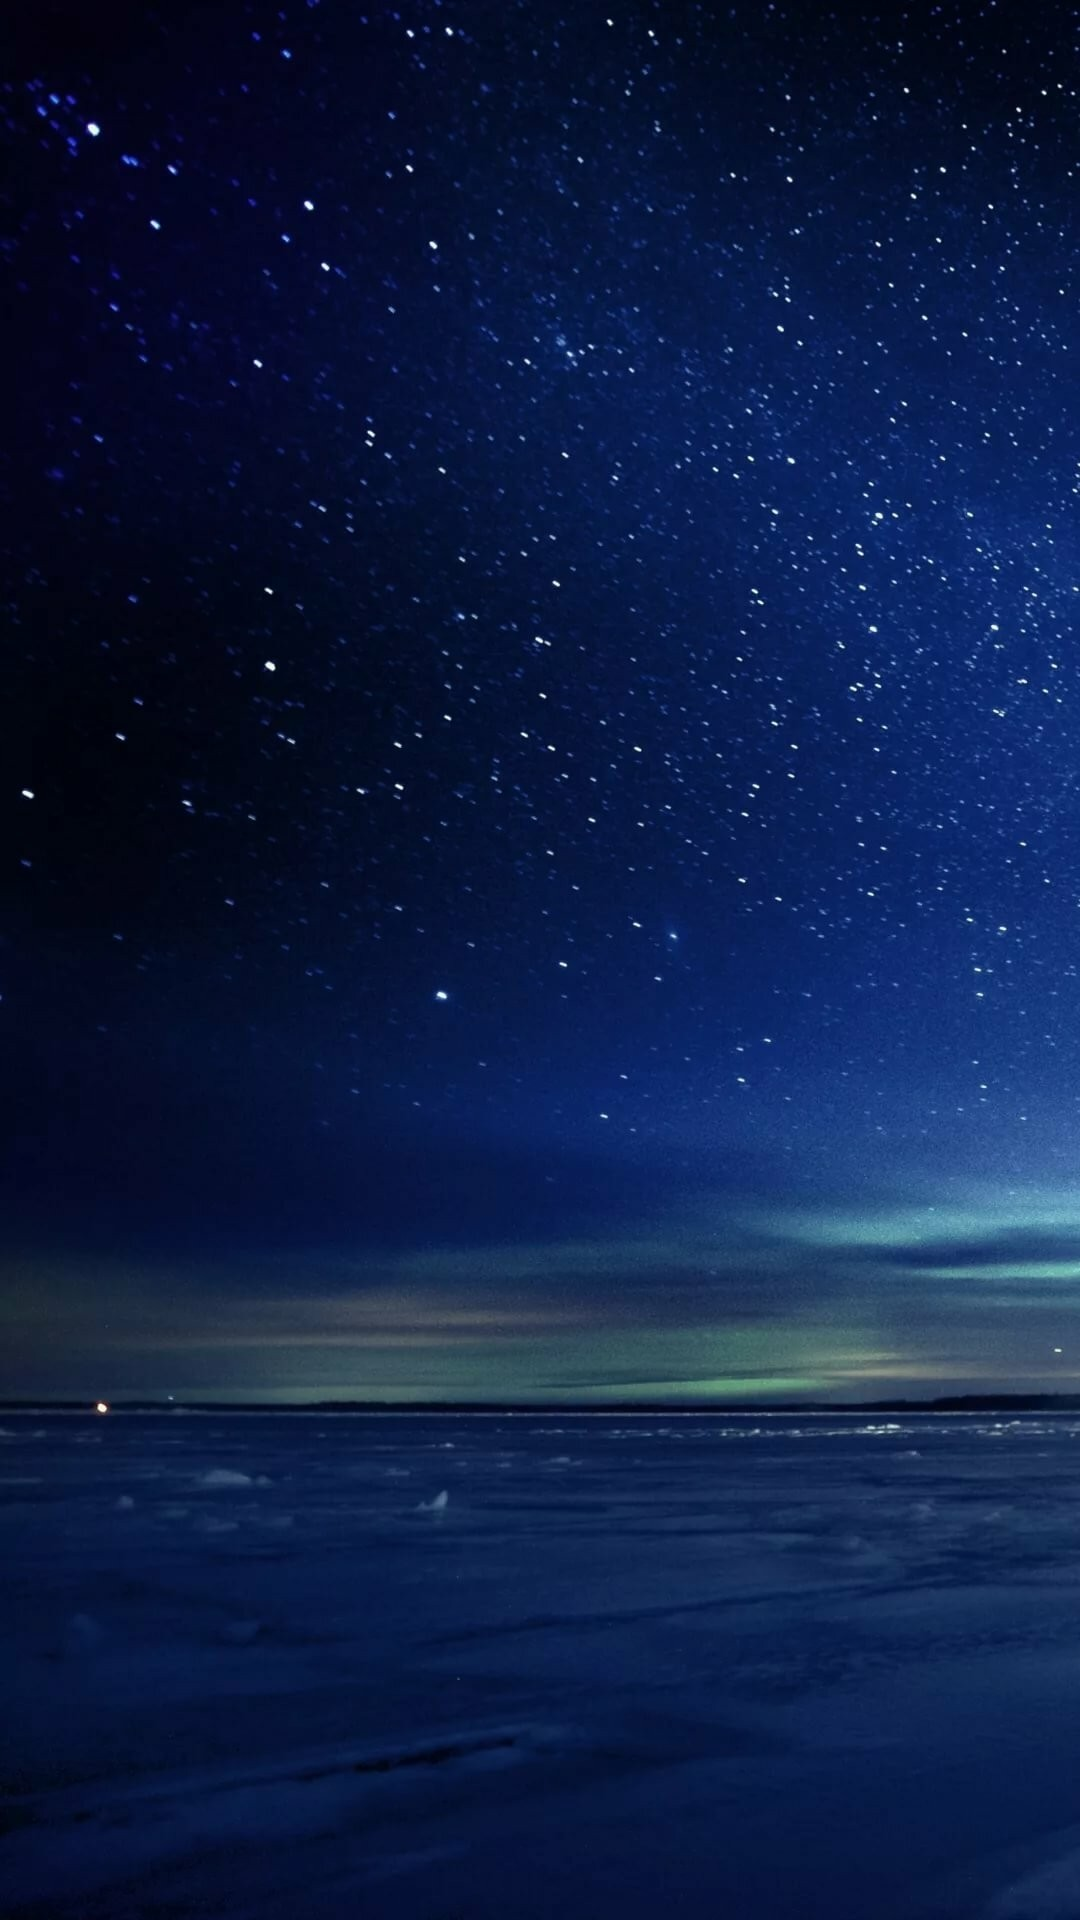 Starry Sky hd wallpaper for mobile